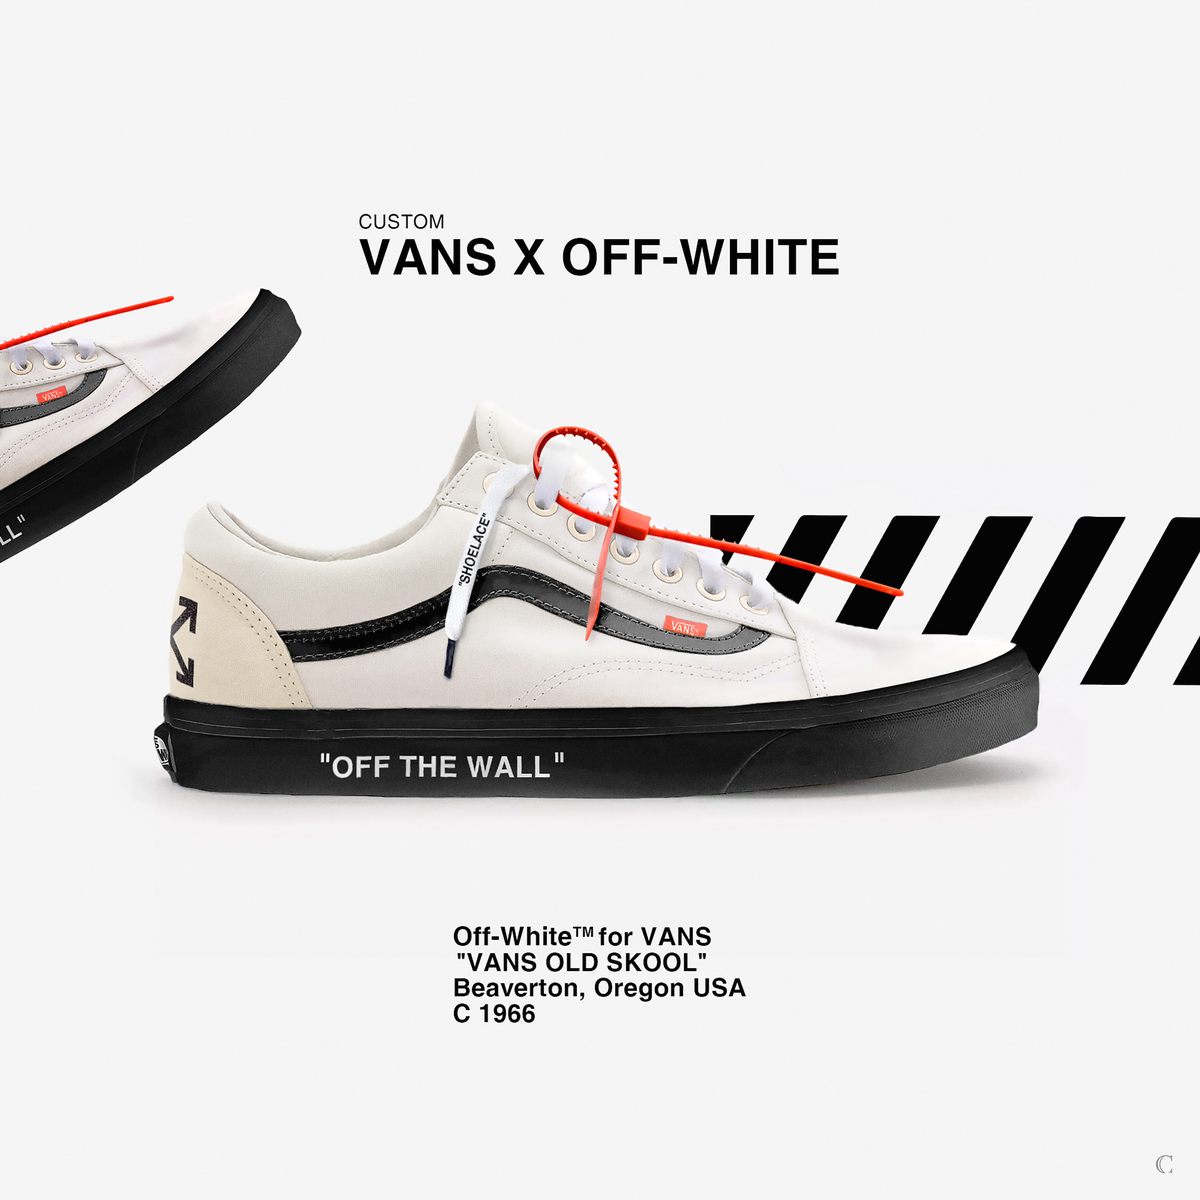 Chris On Twitter My Take Vans X Off White Let Me Know What You Guys Think